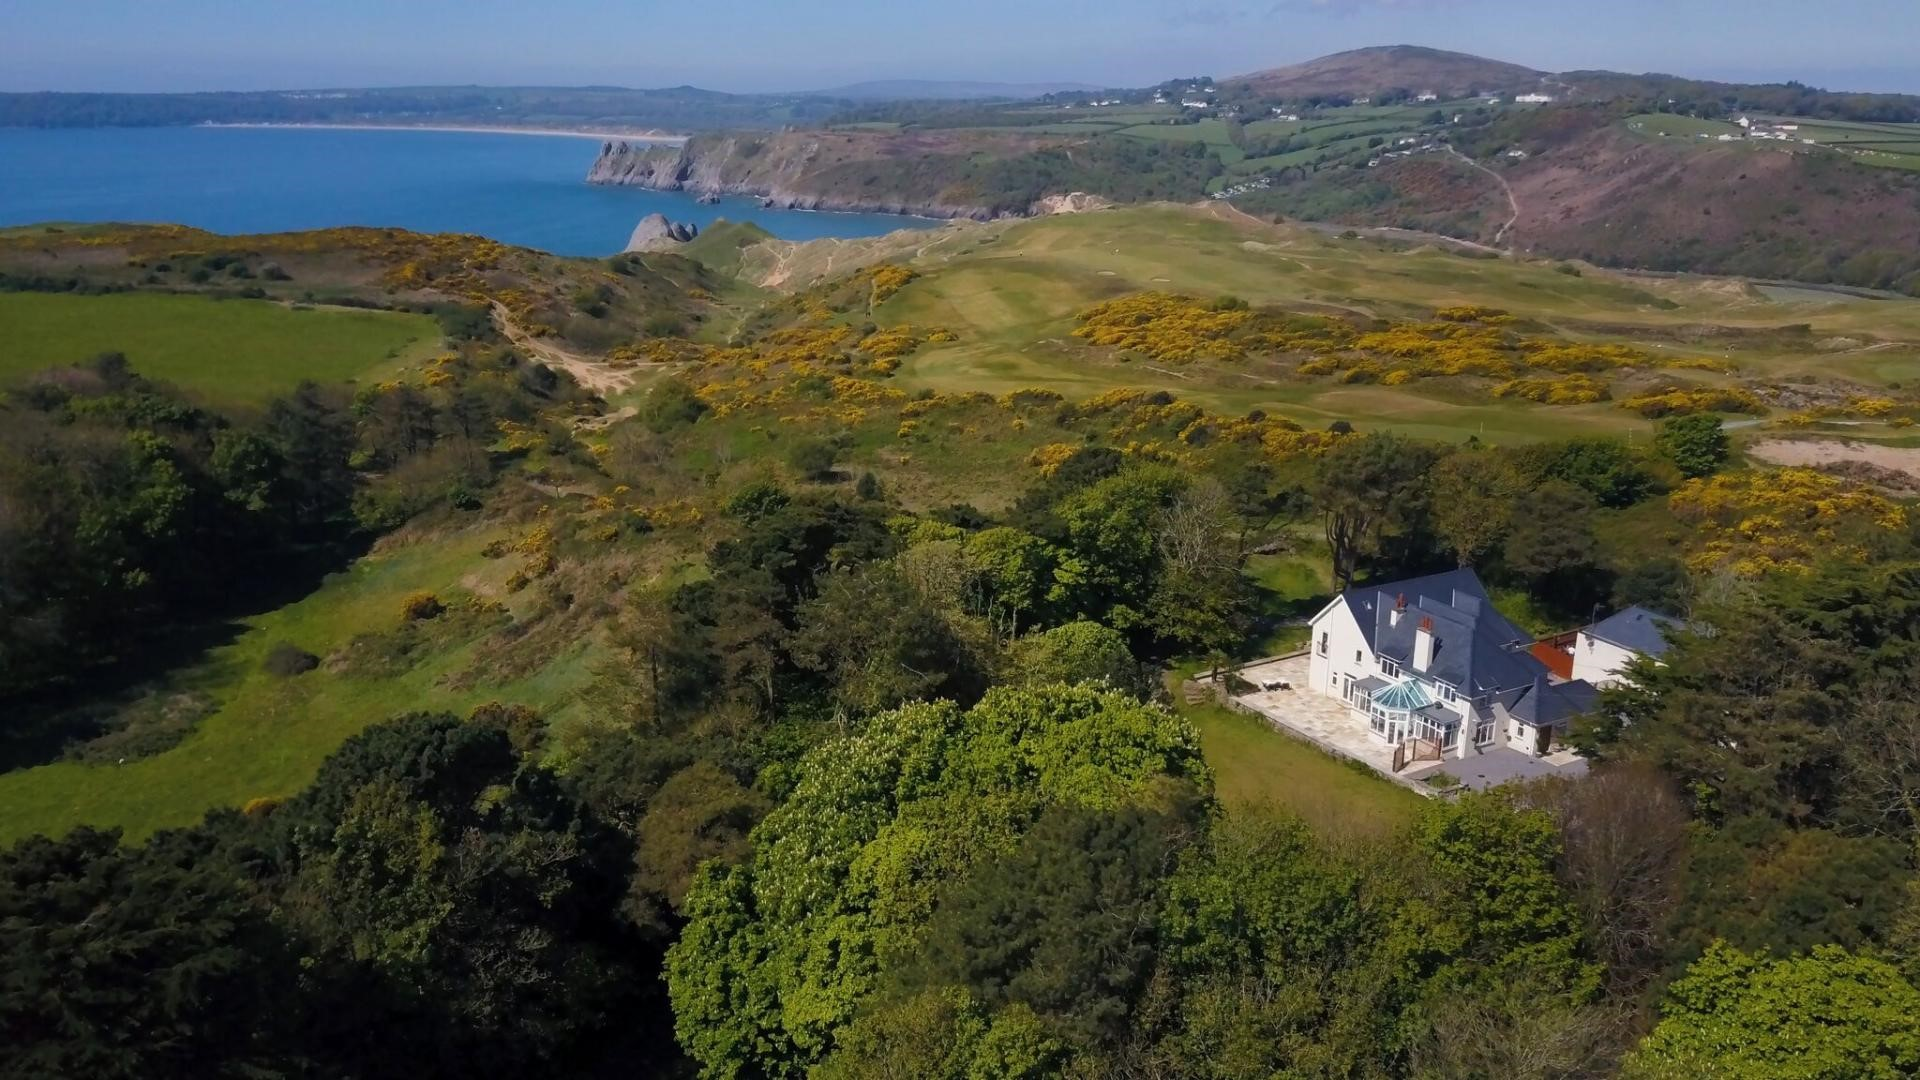 Shirecombe Three Cliffs Oxwich Bay South Wales house by sea